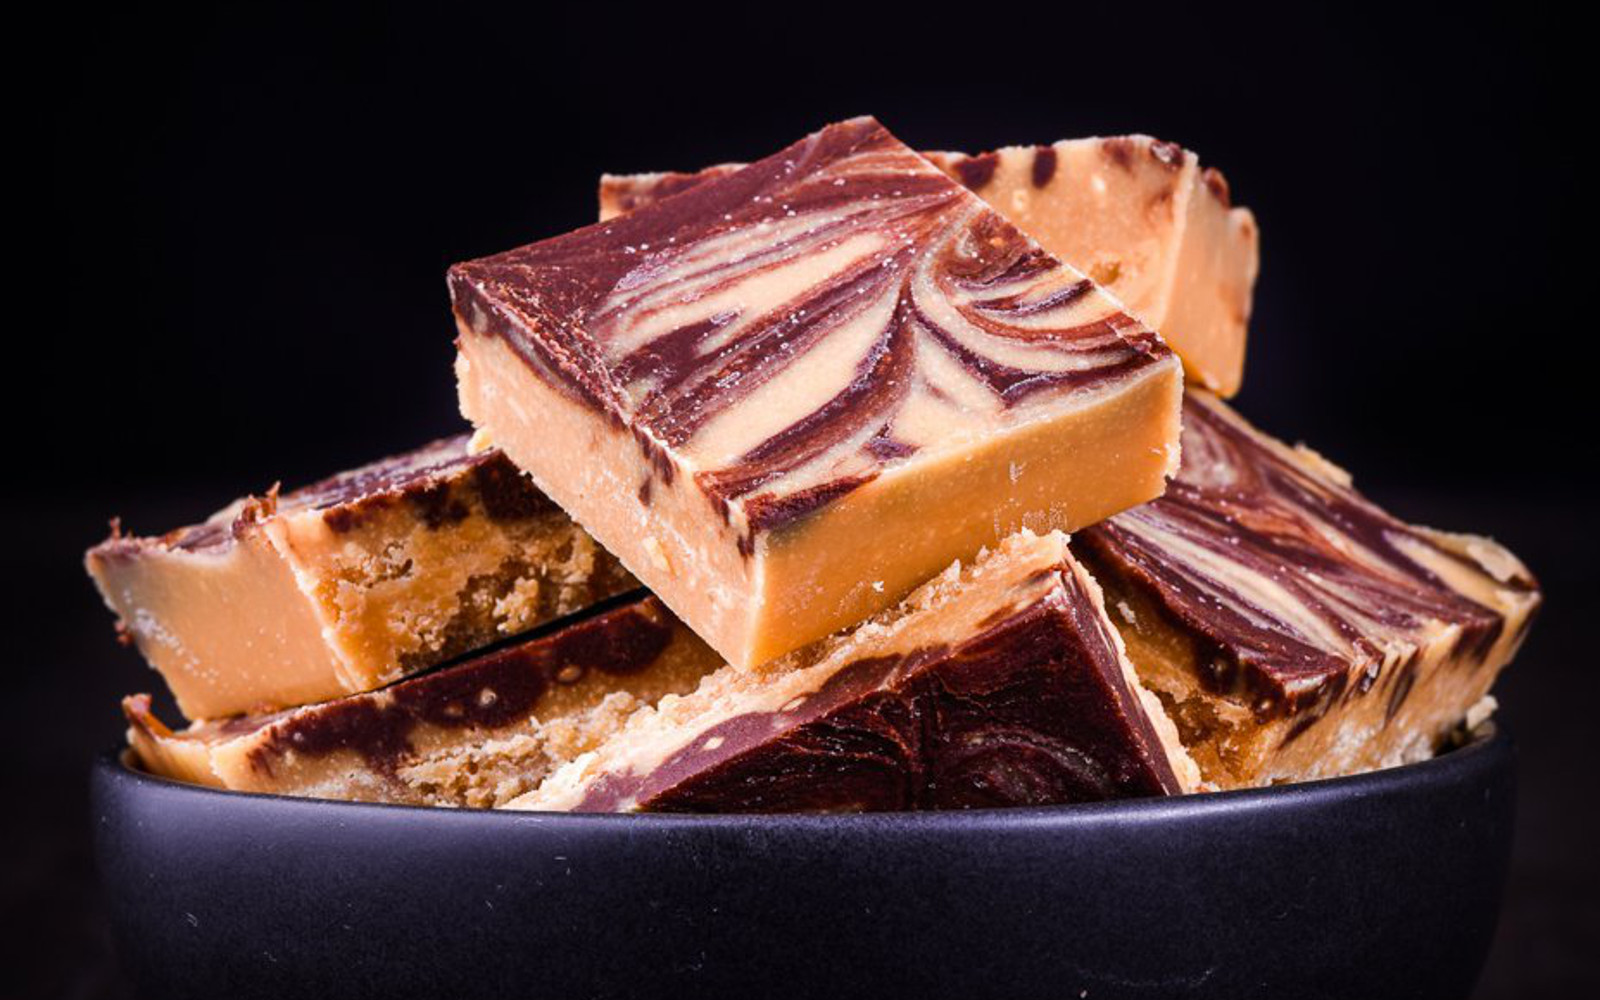 Chocolate and Peanut Butter Fudge